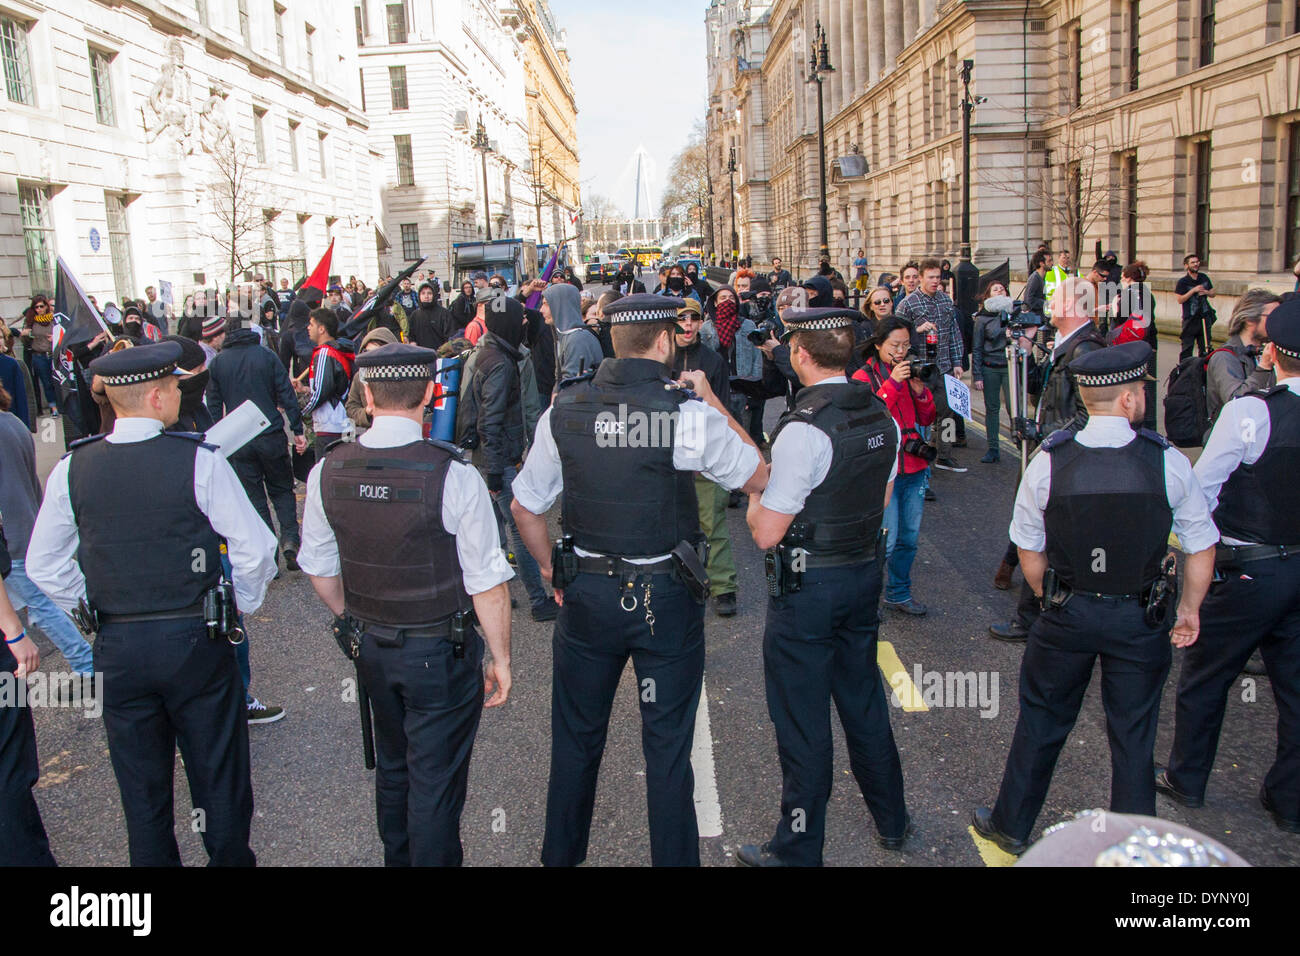 London, March 15th 2014. Police block a charge by anti-fascist counter-protesters from a side street as the English Stock Photo